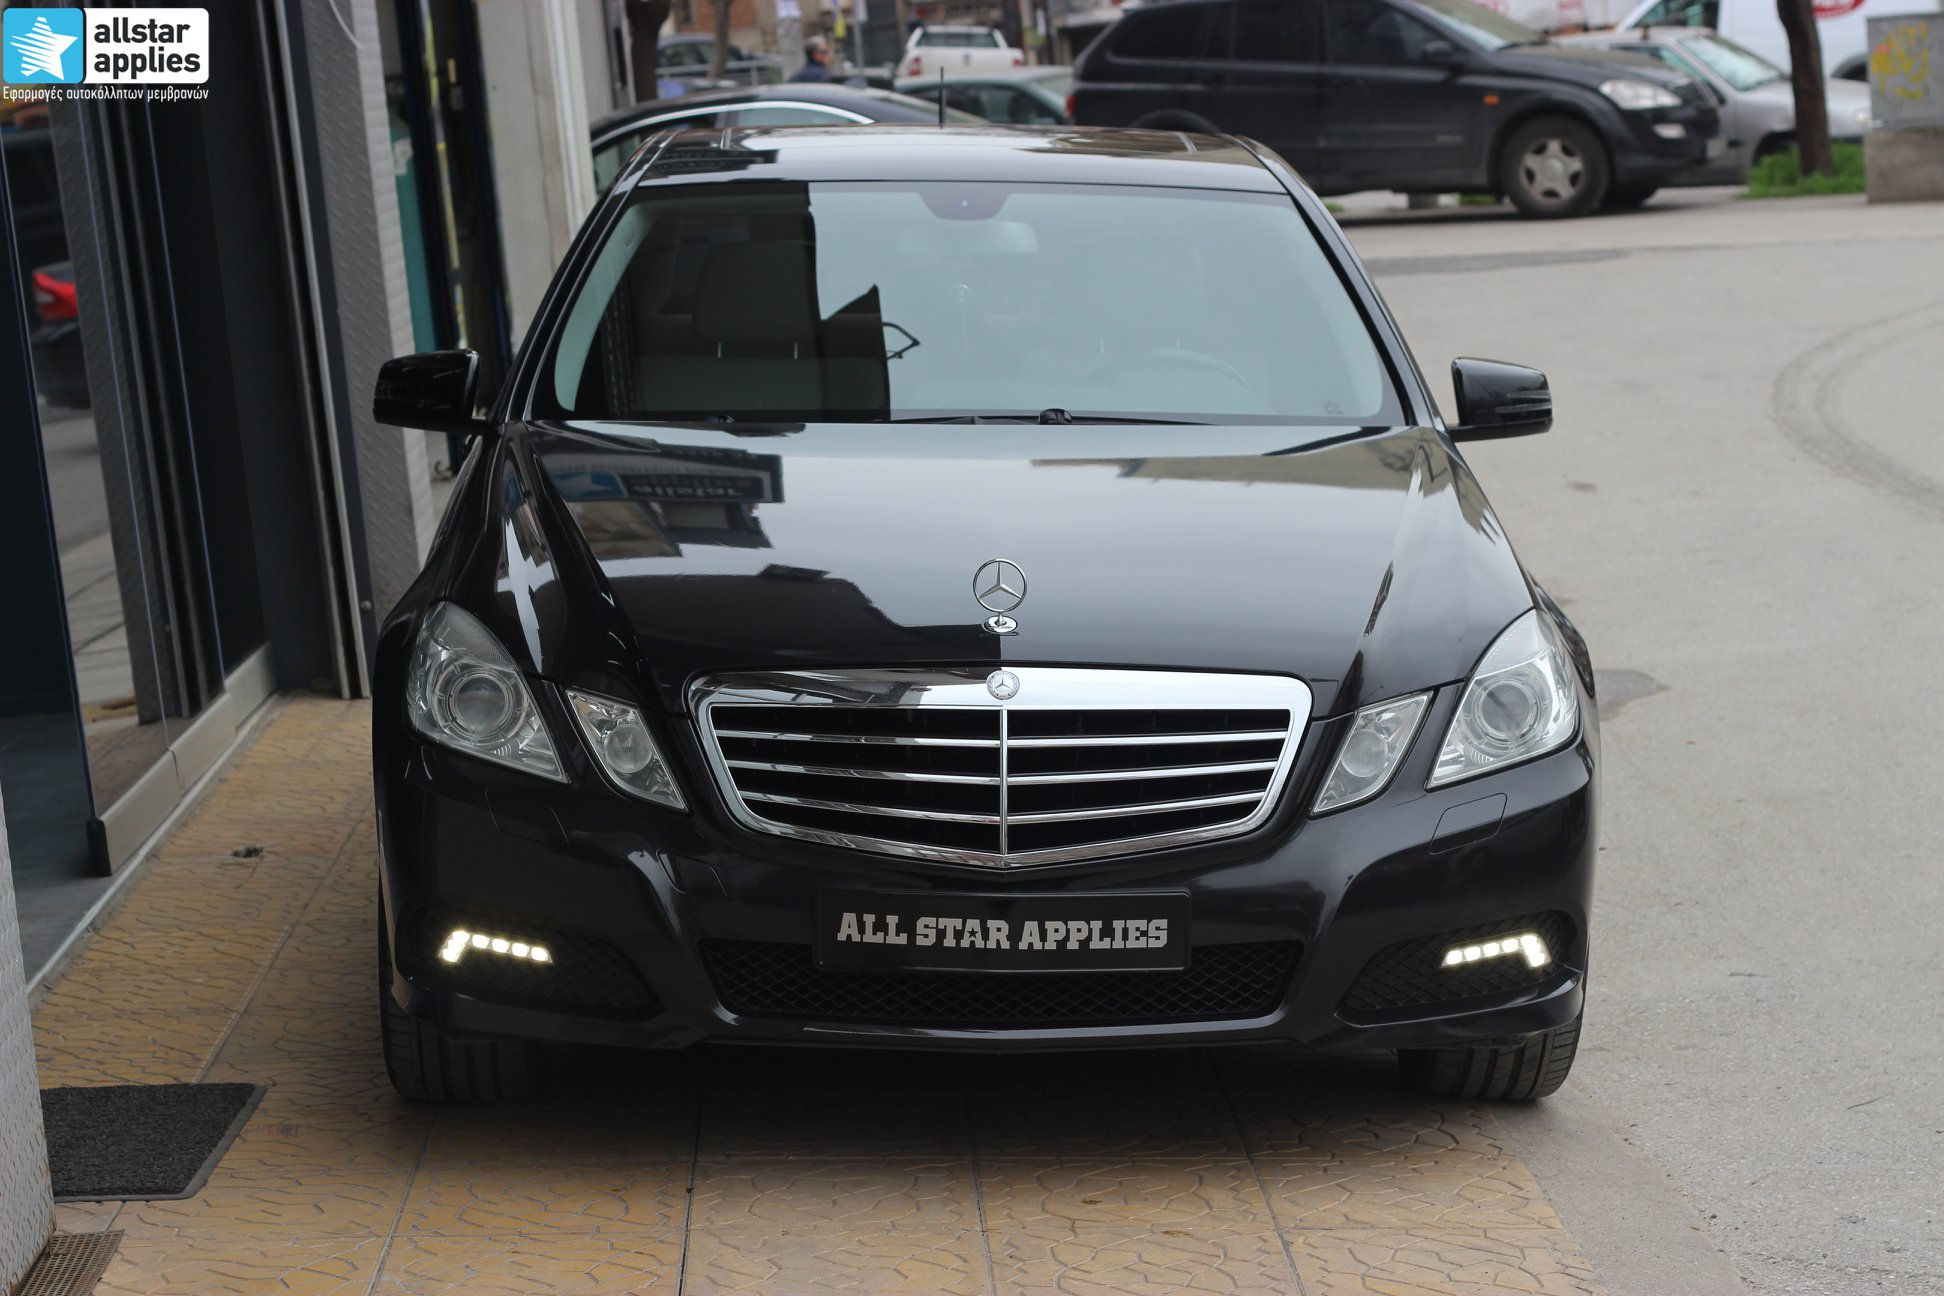 Mercedes E250 - Black Metallic (9)